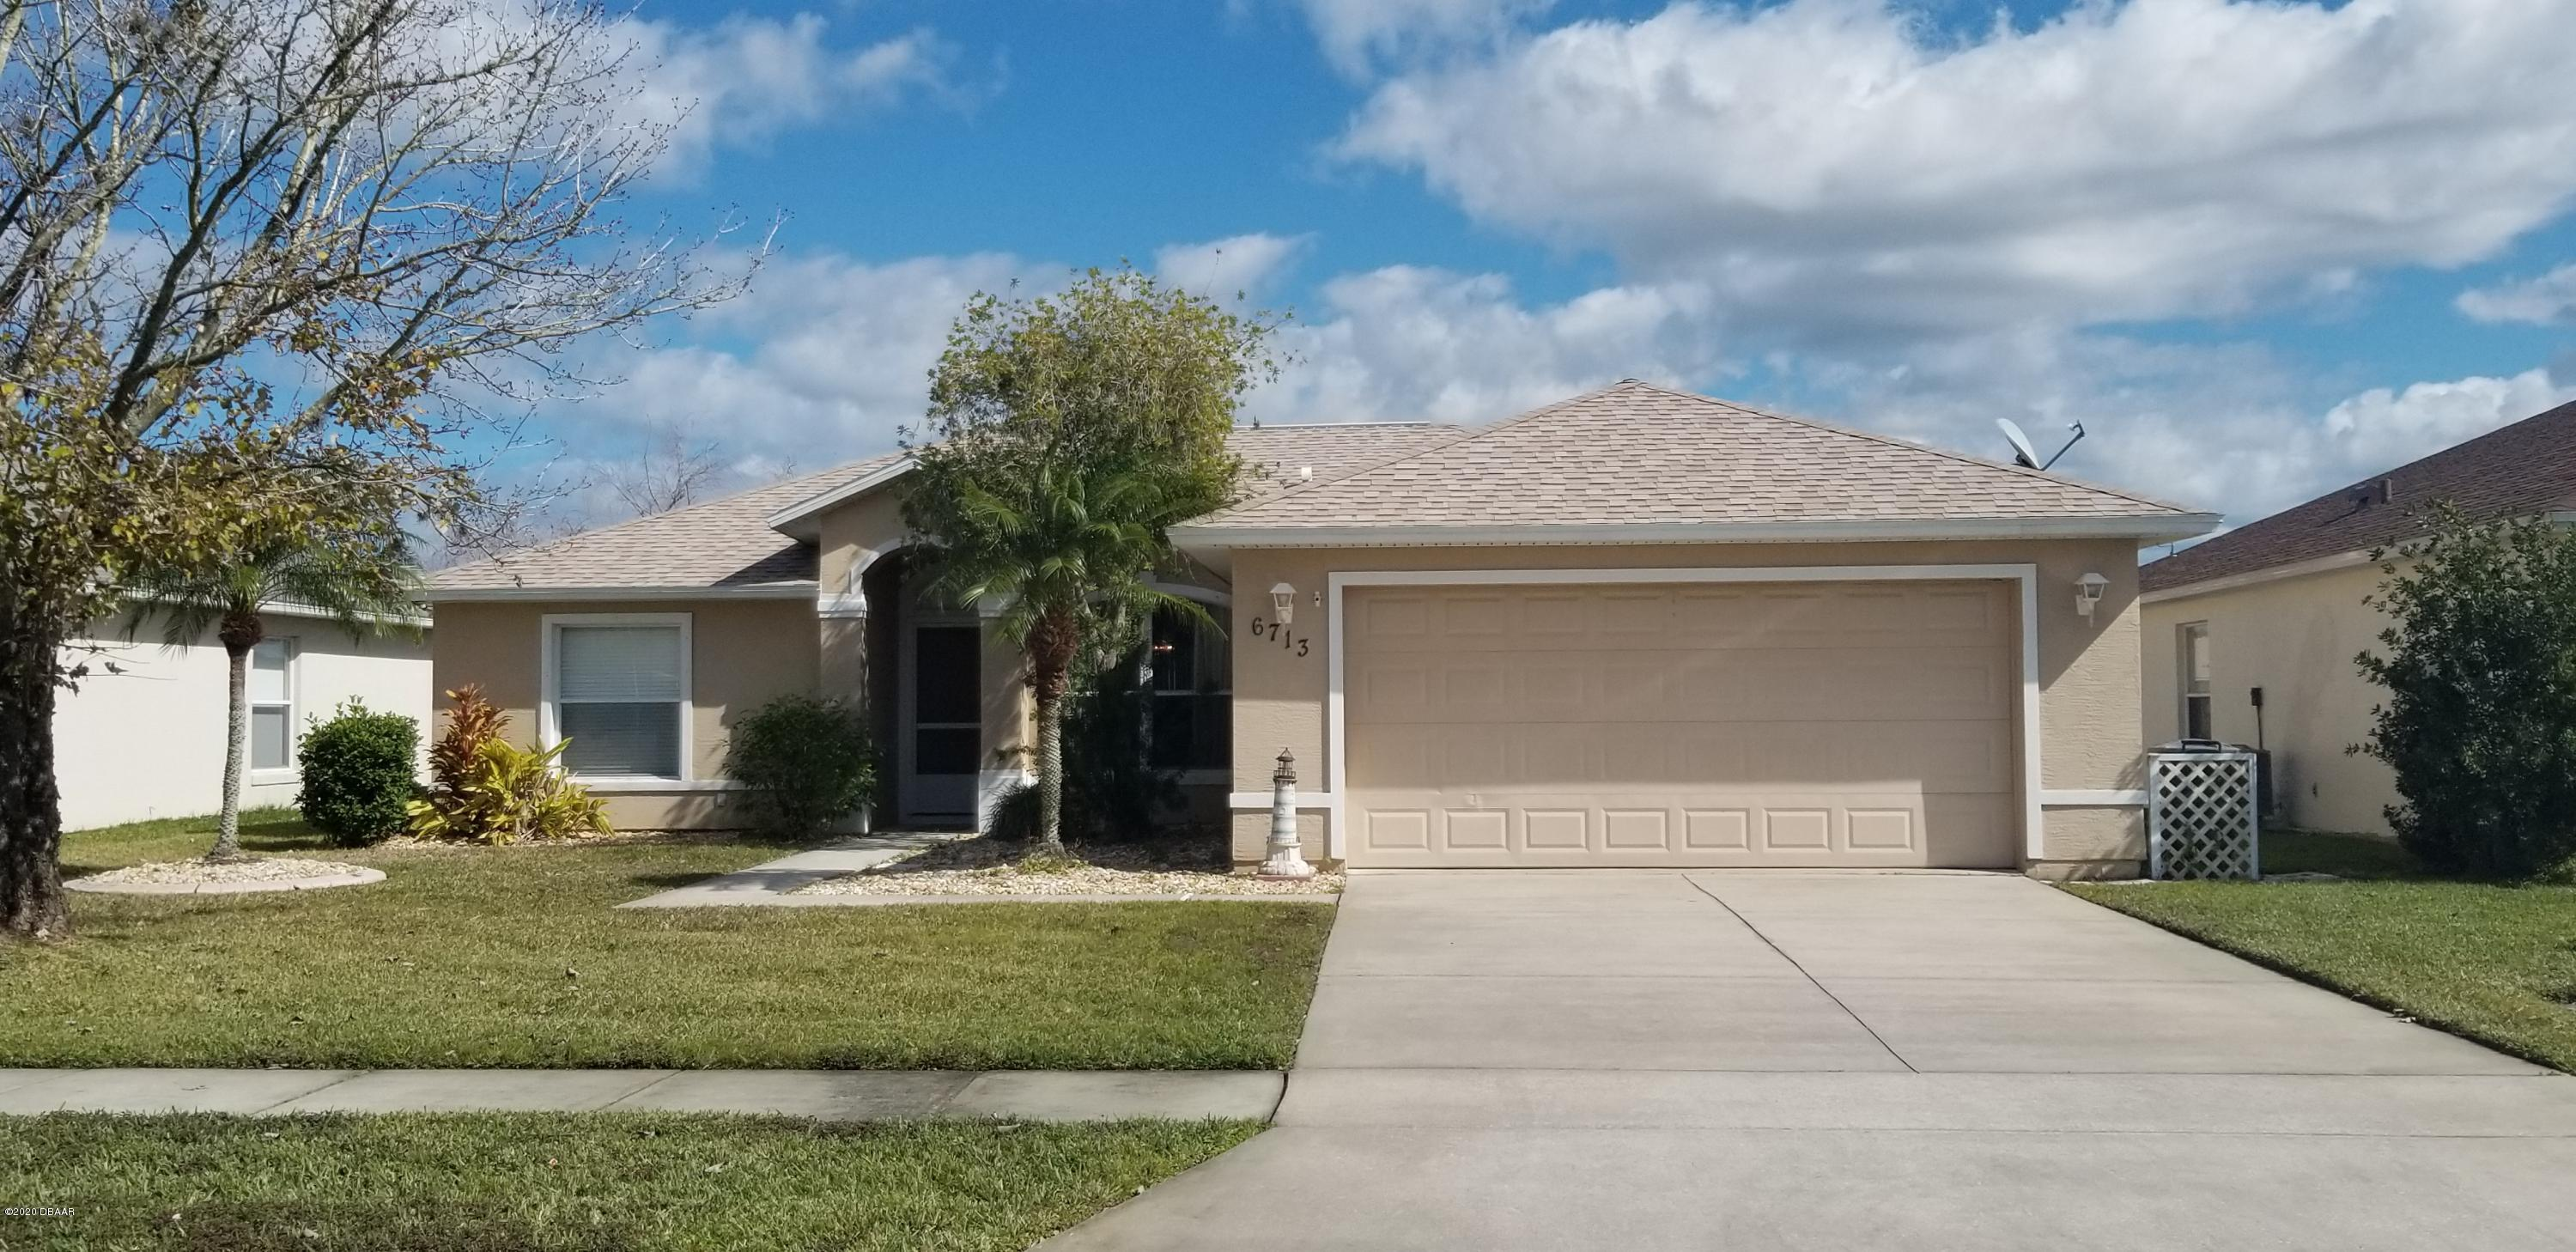 Photo of 6713 Ferri Circle, Port Orange, FL 32128